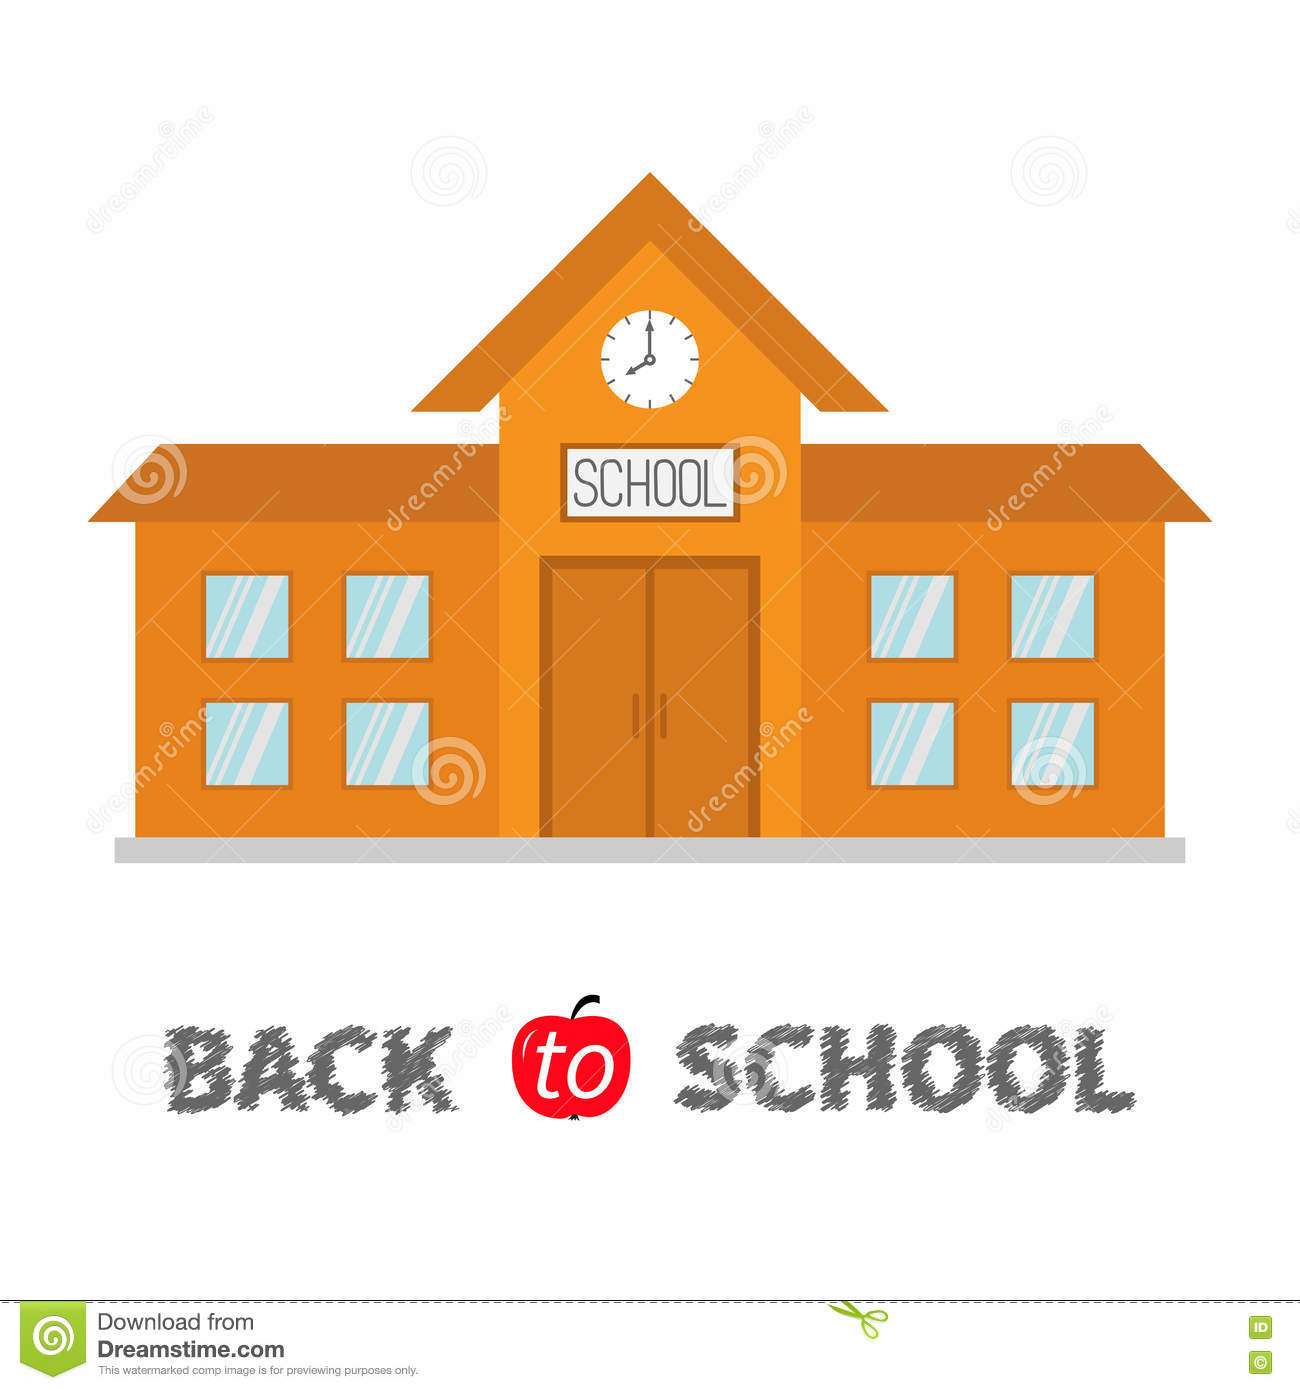 school clipart collection - photo #29